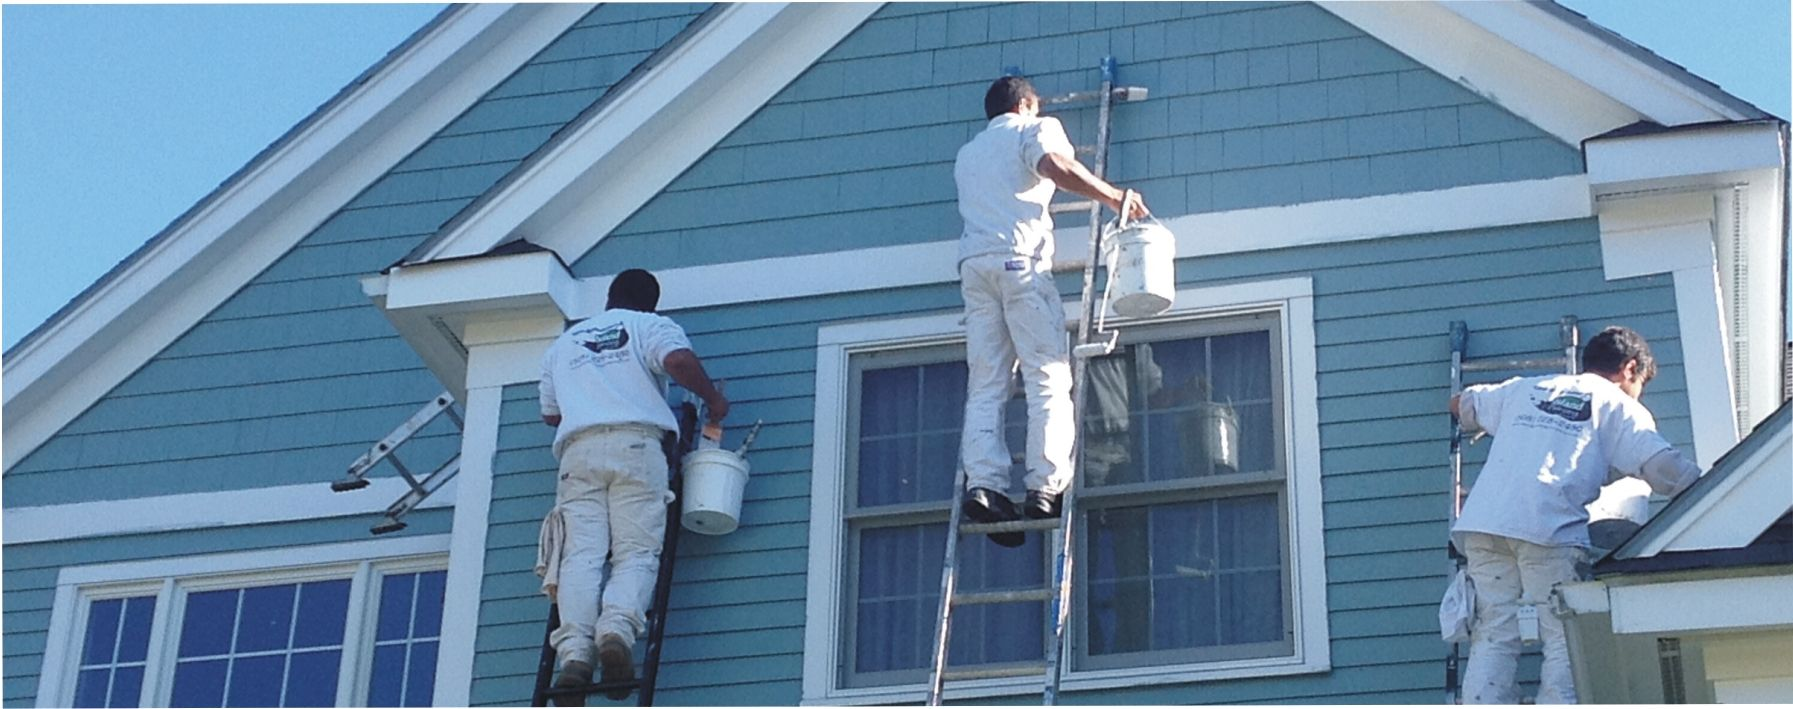 Exterior house painting looking for professional house painting in stamford ct house painting - Painting house exterior ideas set ...